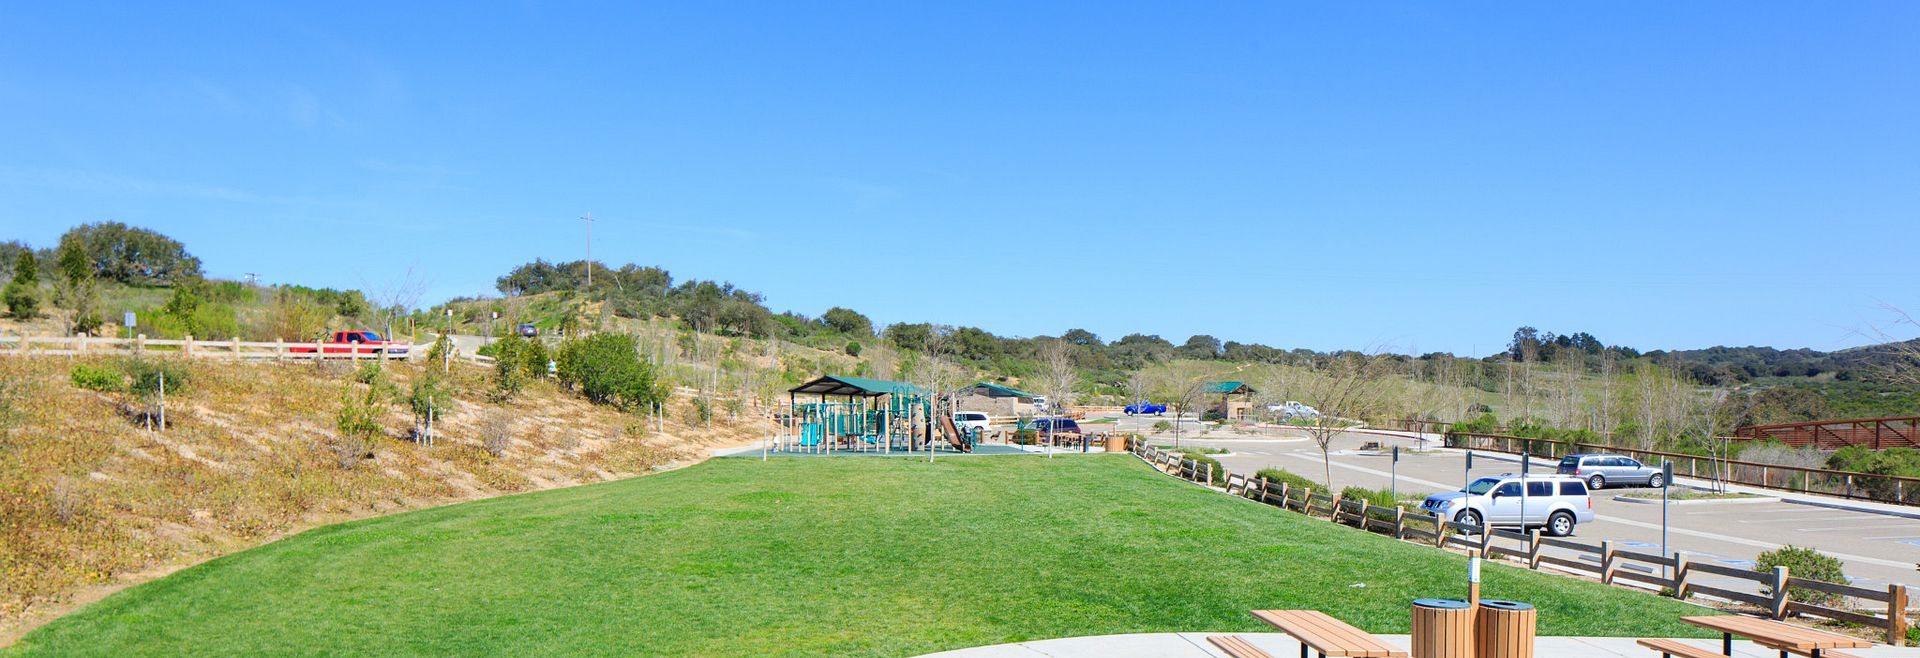 Shea Homes Rice Ranch Community Park